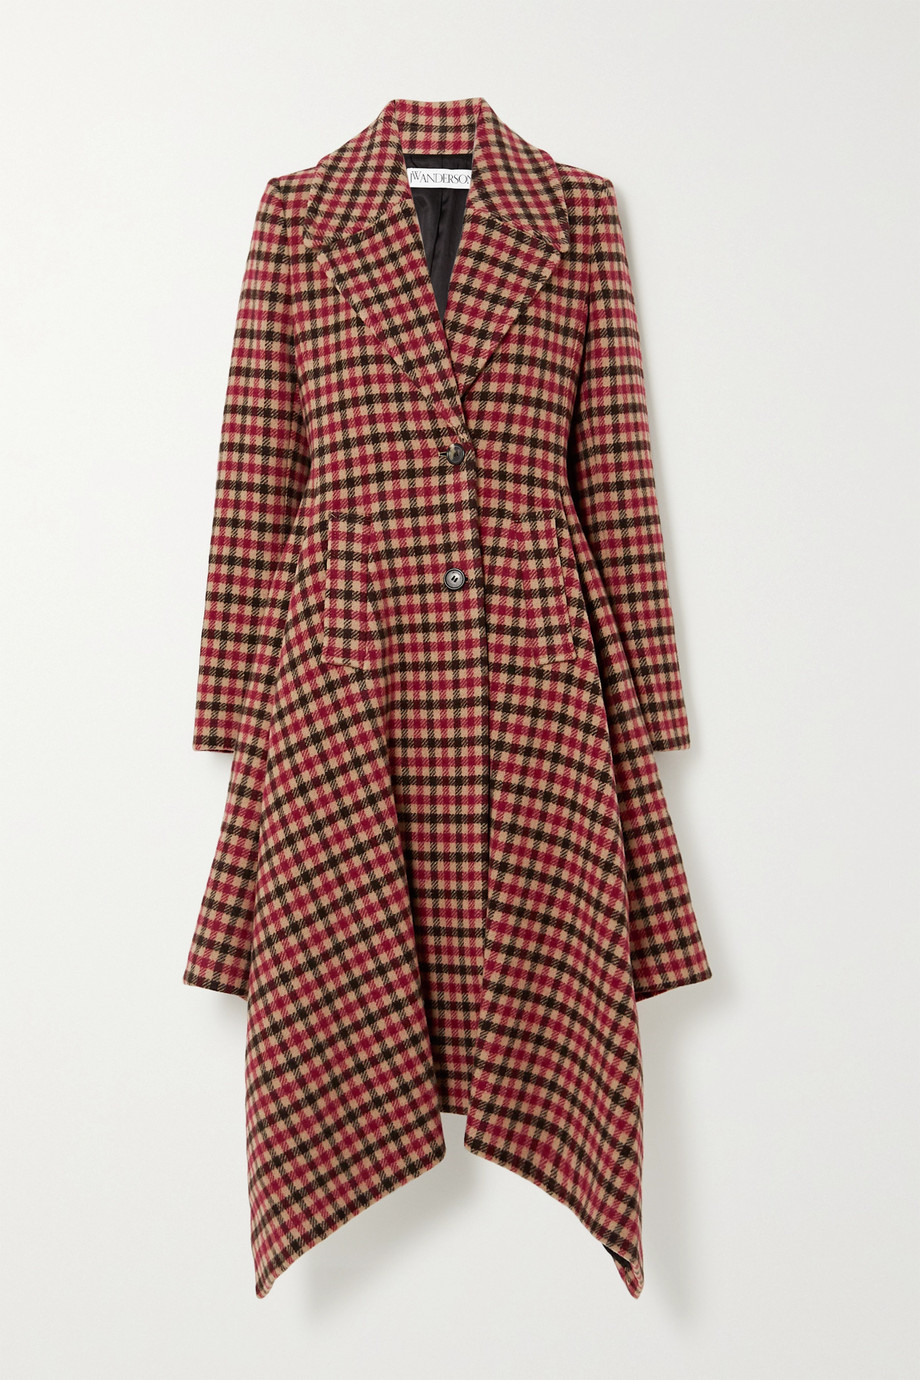 JW Anderson Asymmetric checked wool-blend coat